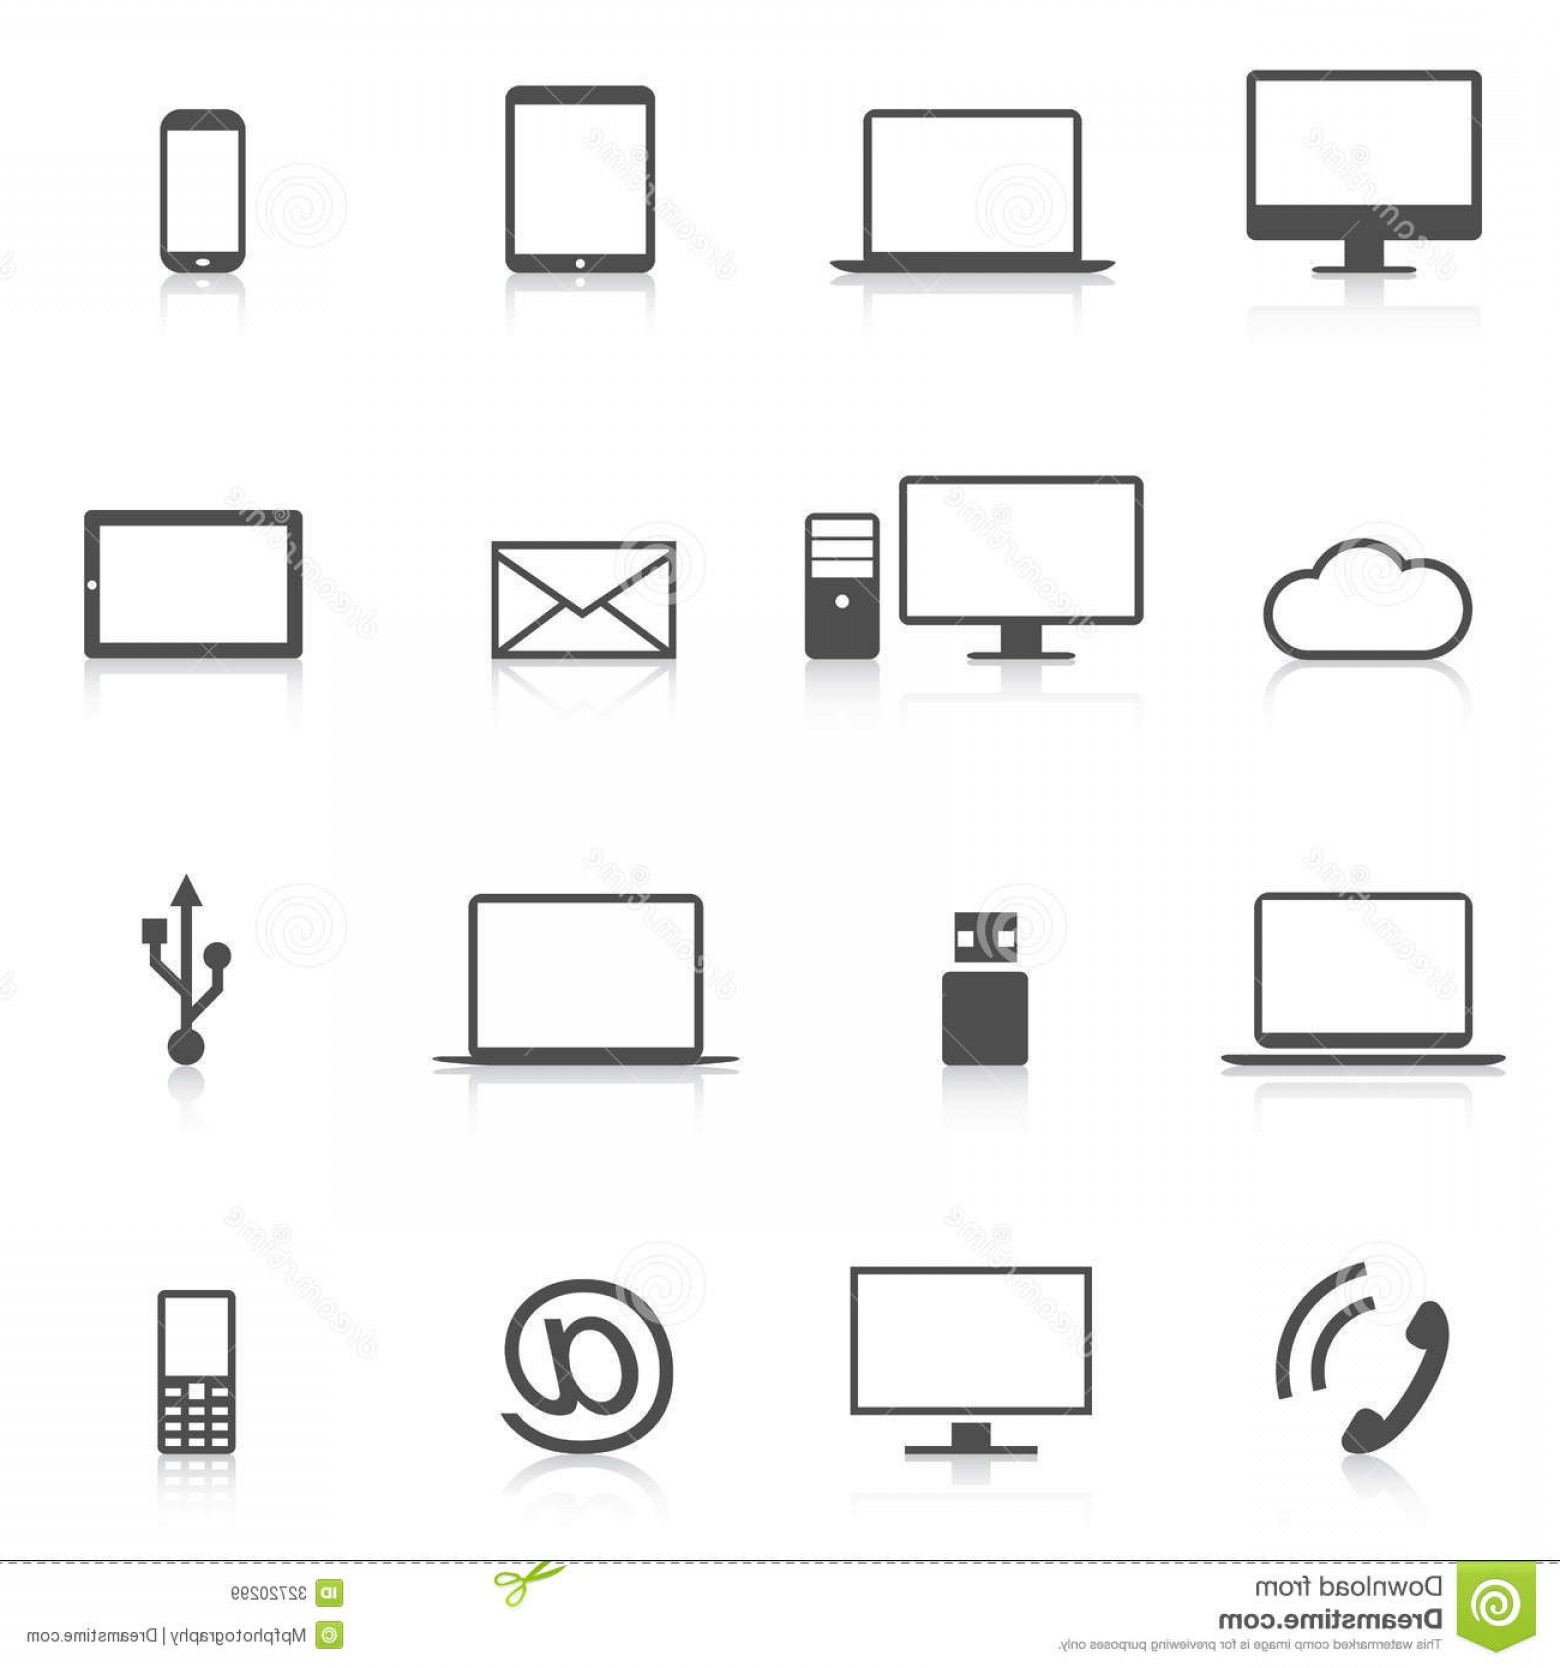 Computer Vector Icon Flat: Royalty Free Stock Images Set Modern Computer Icons Isolation Vector Electronic Tablets Computers Phone Others Image